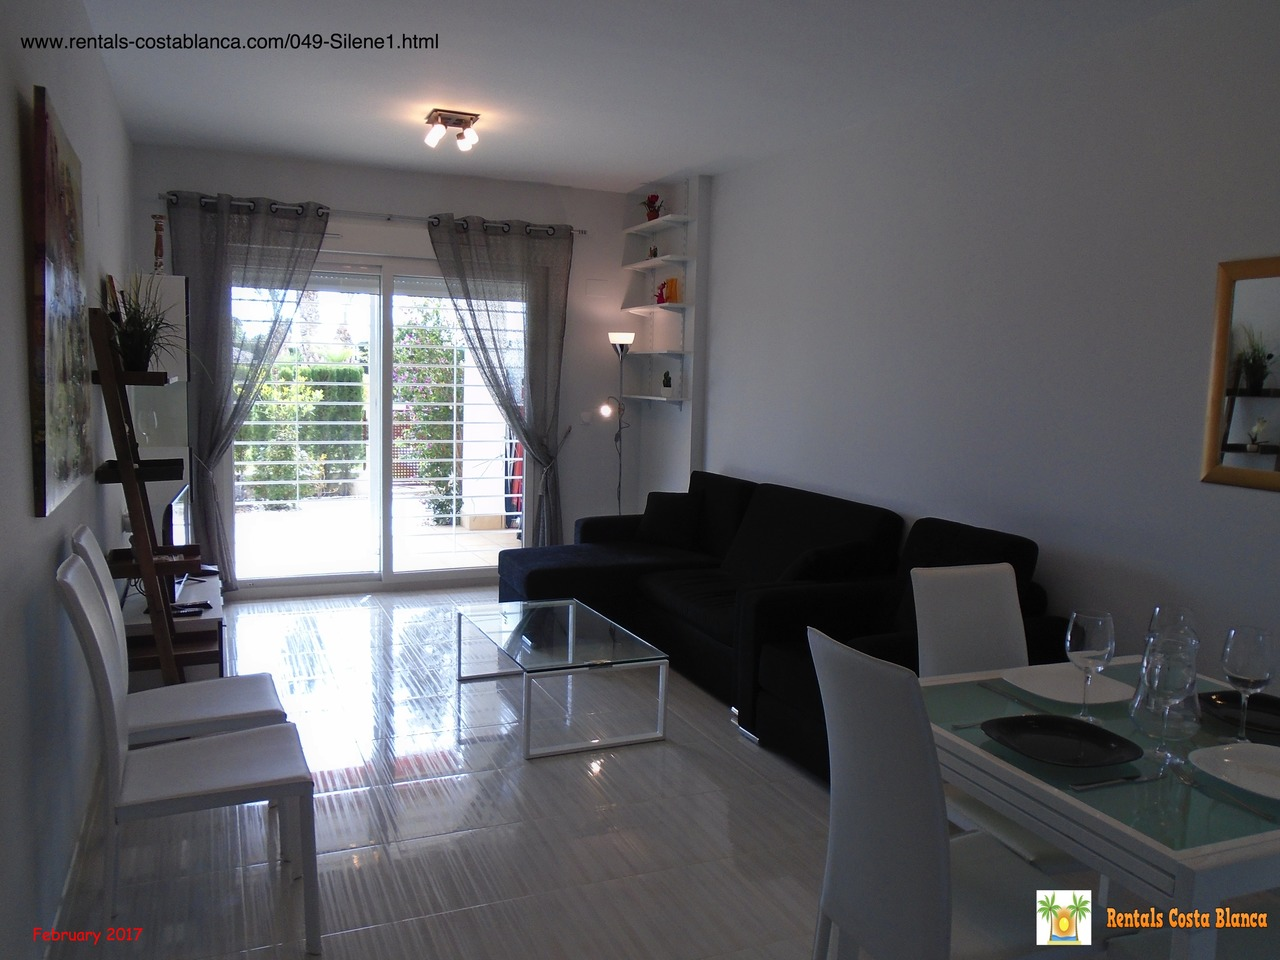 Location & Hébergement de Vacances - Appartements - Spain - Torrevieja / Calle Nazaries / Alicante / Costa Blanca - Punta Prima / Torrevieja